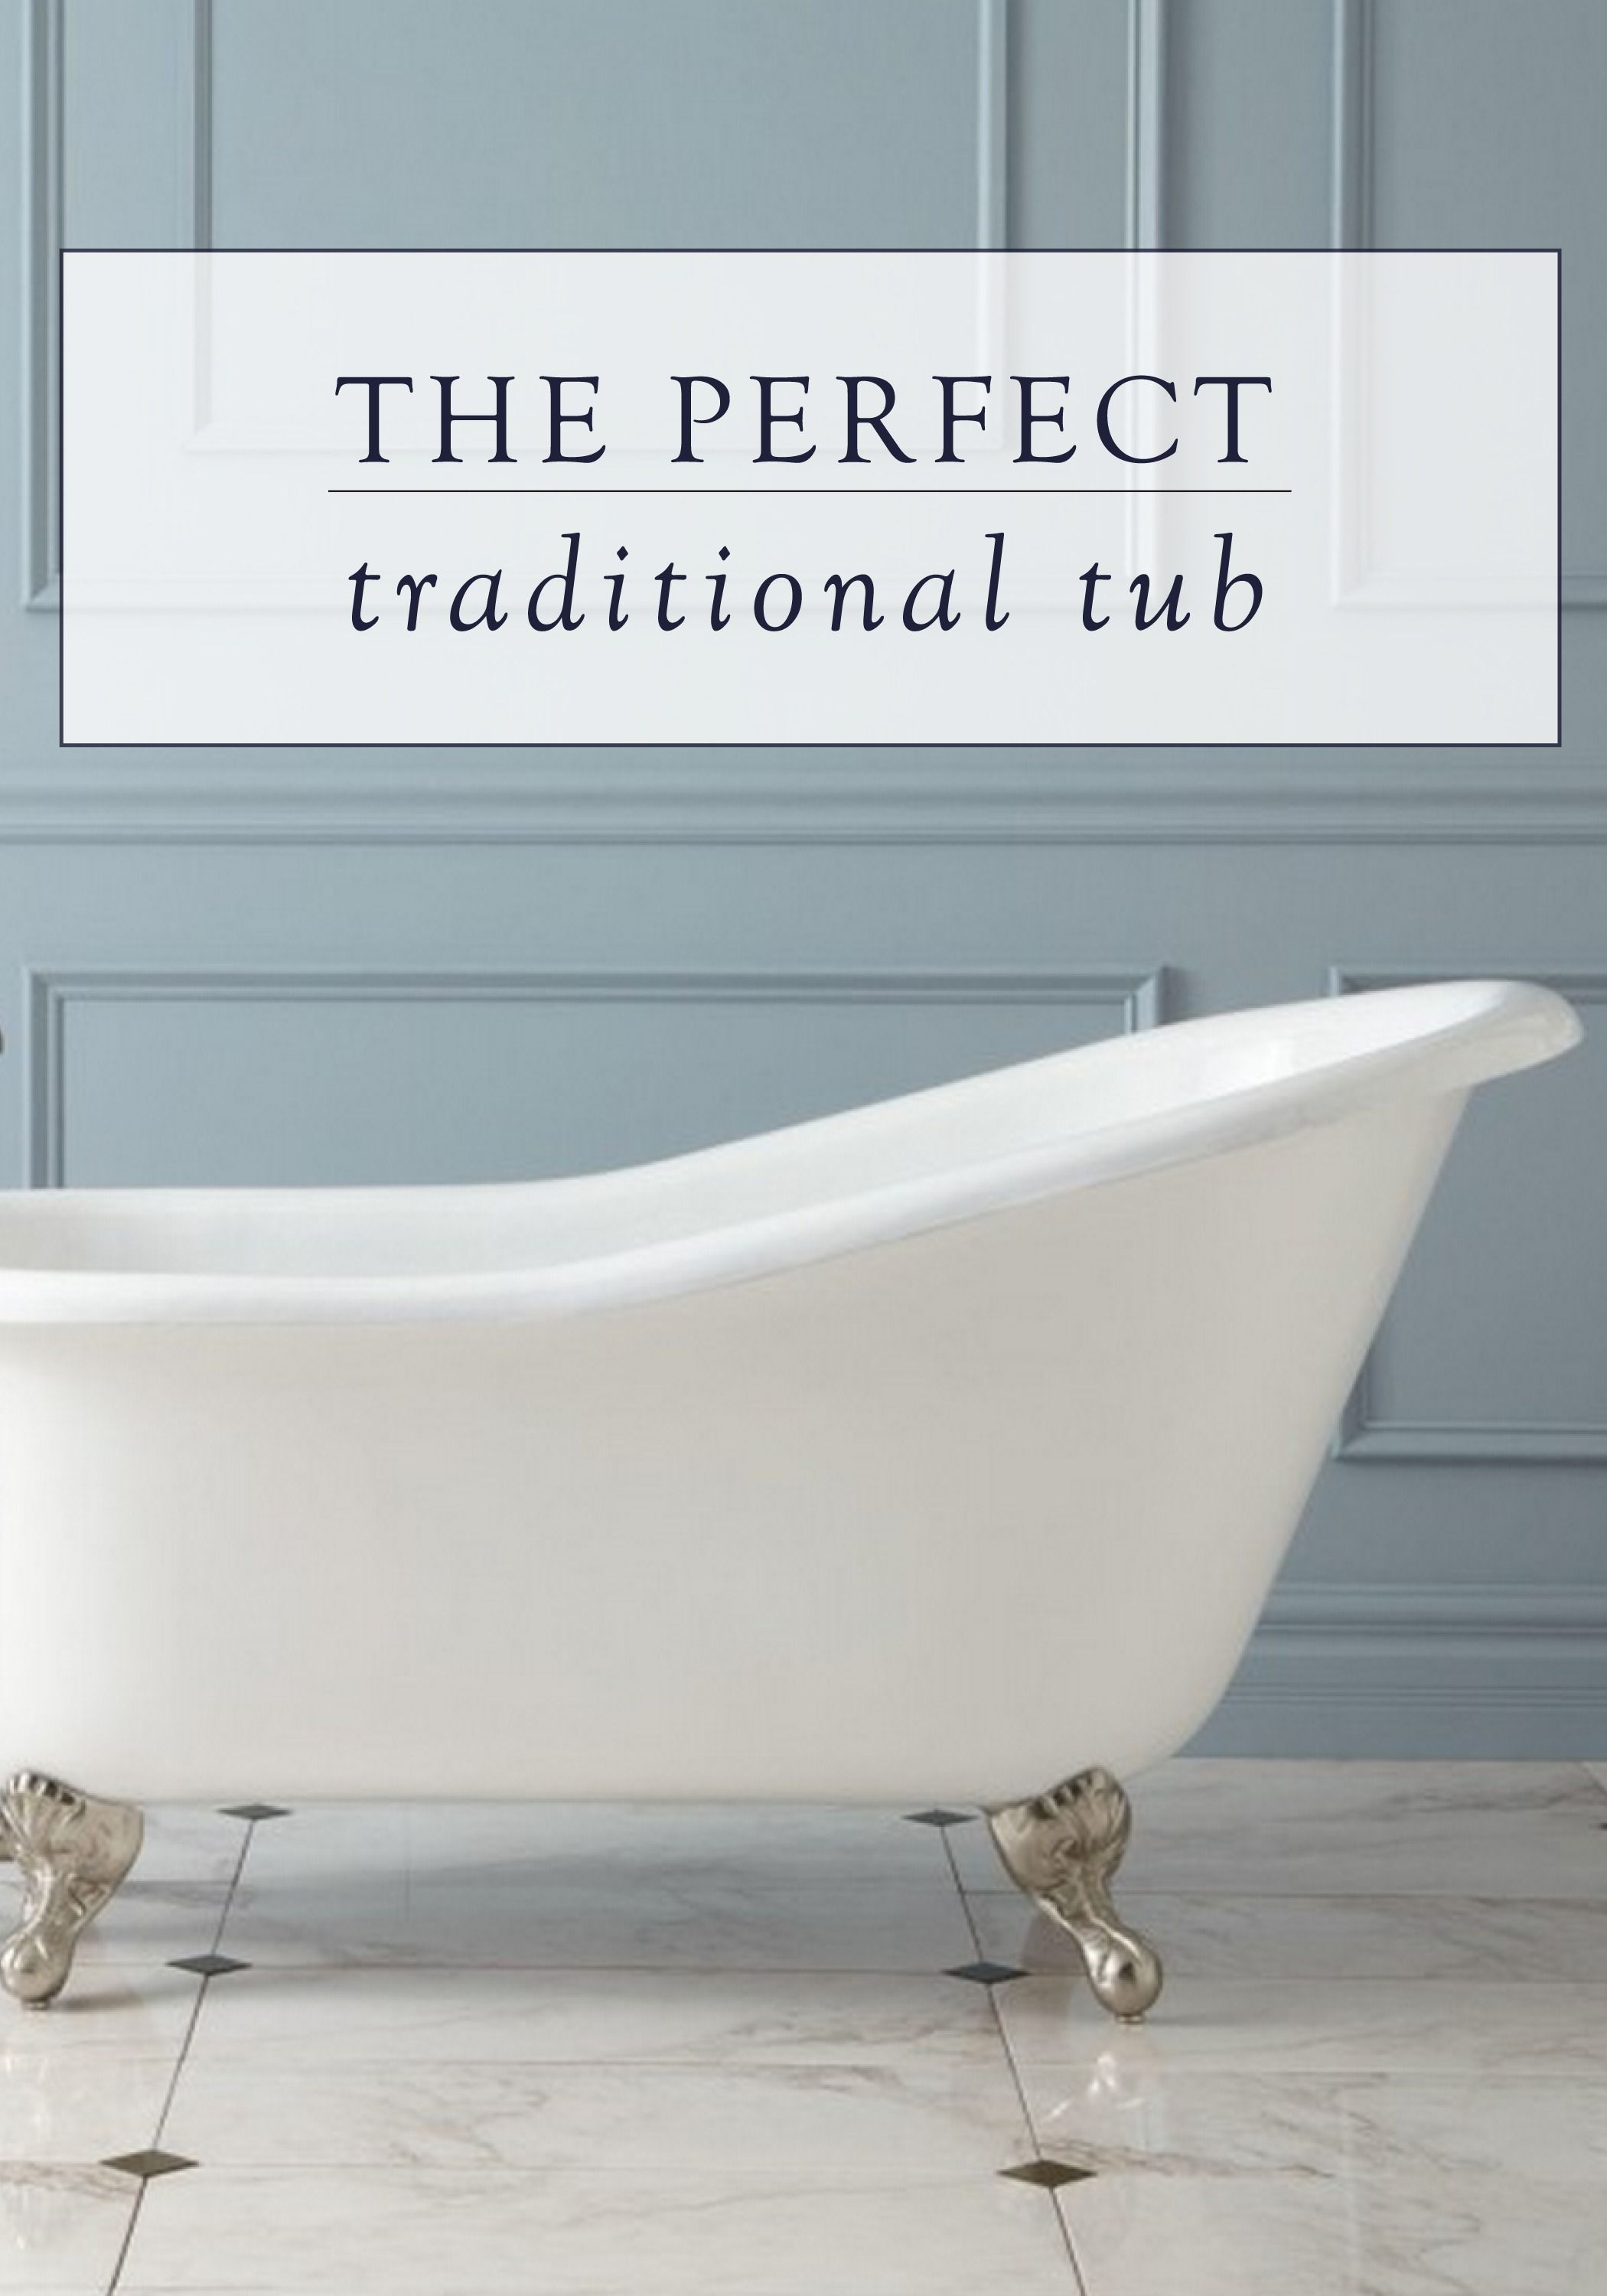 depot tub cast size bathtub curved standard tubs parts iron steel free bathtubs stainless pedestal galvanized full manual home cadet bath sink standing